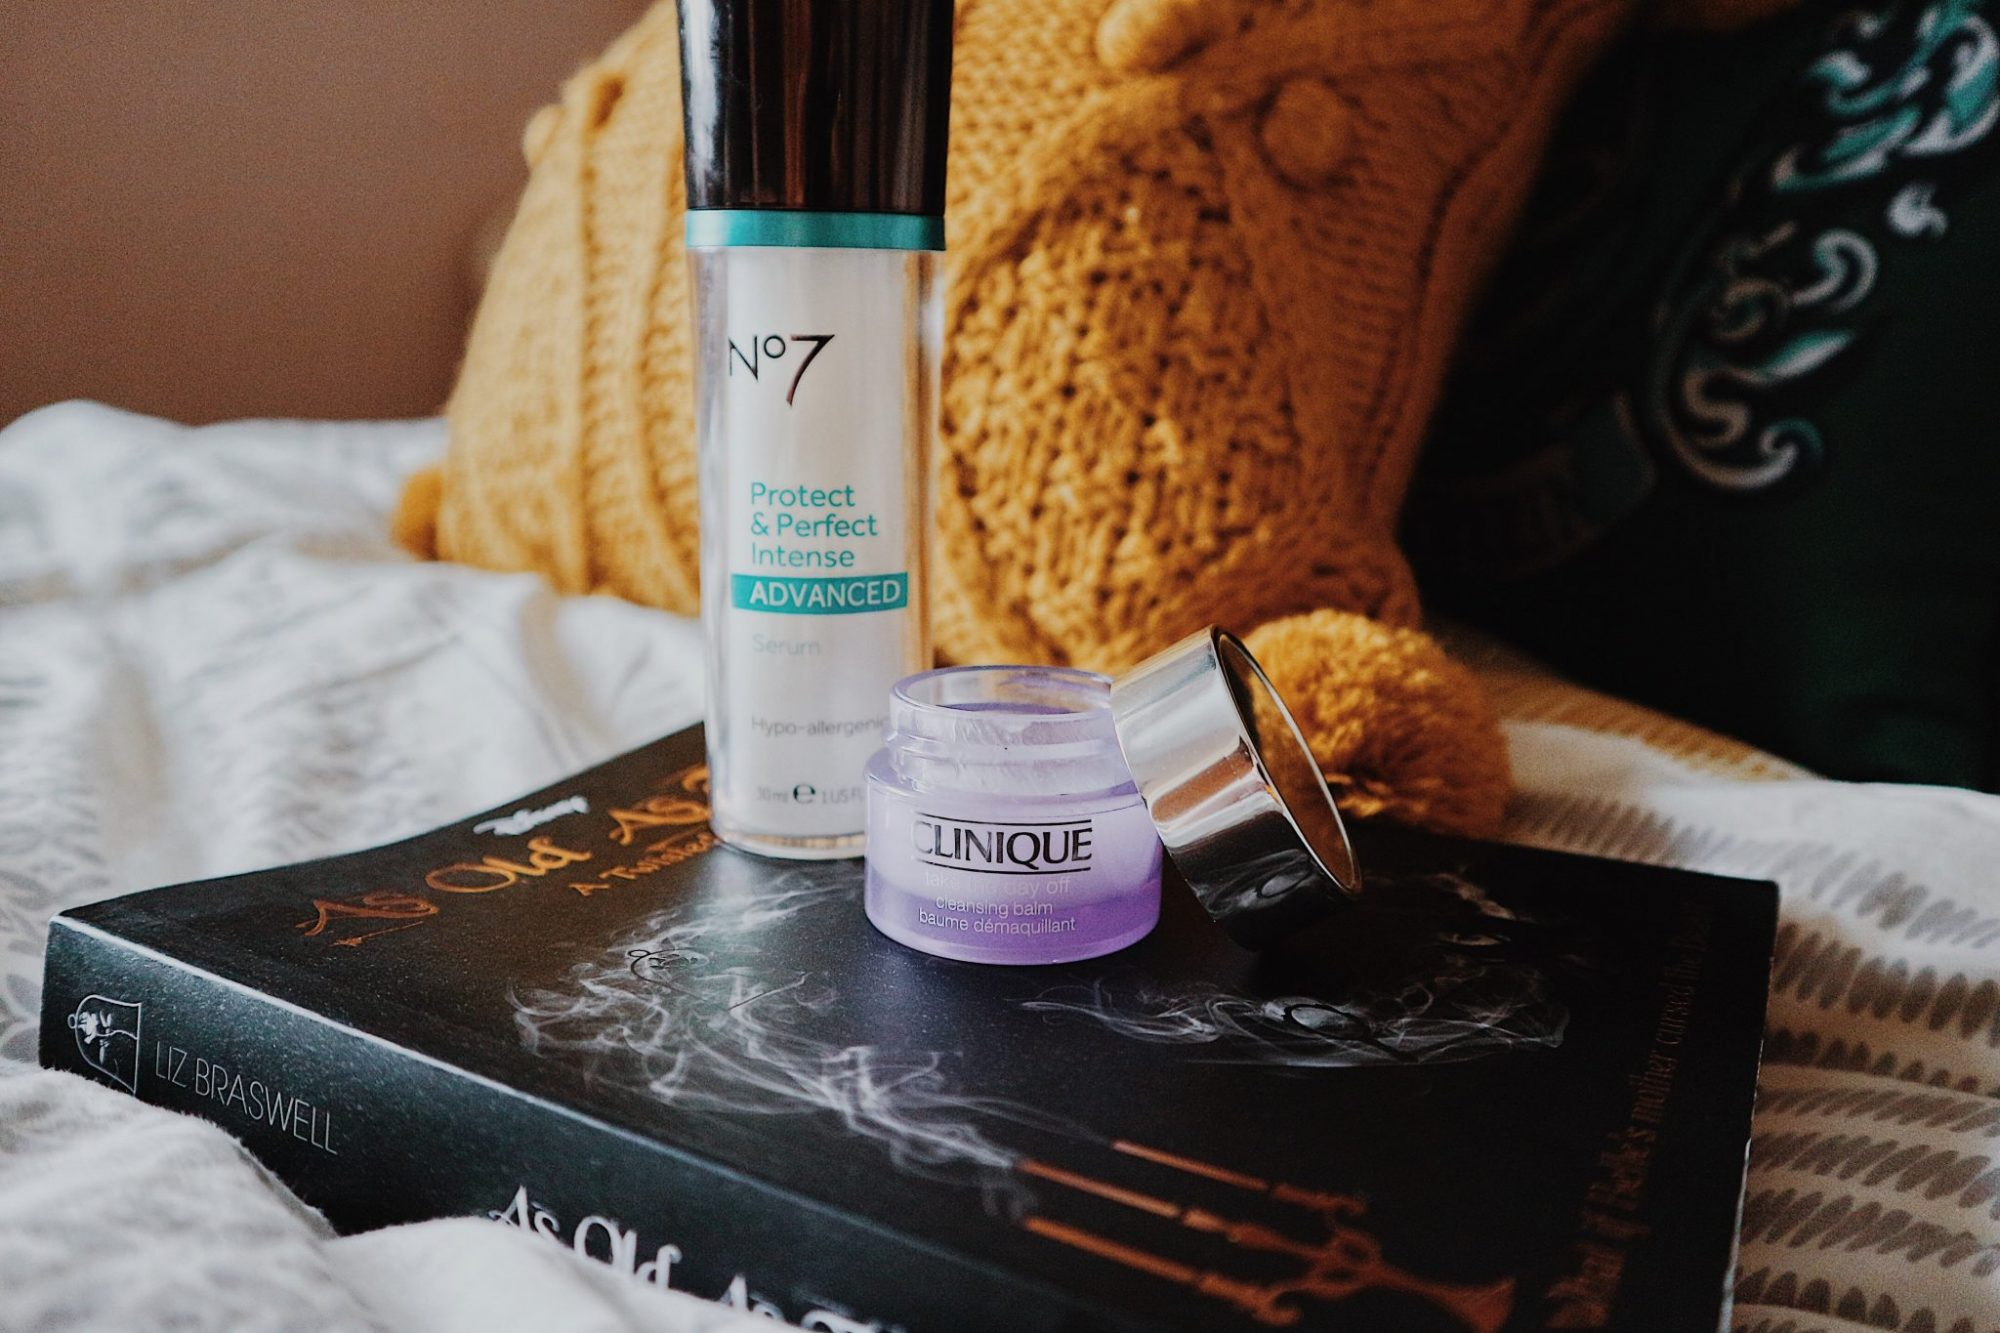 No7 Protect & Perfect Advanced Serum | Clinique Take The Day Of Balm | Skincare